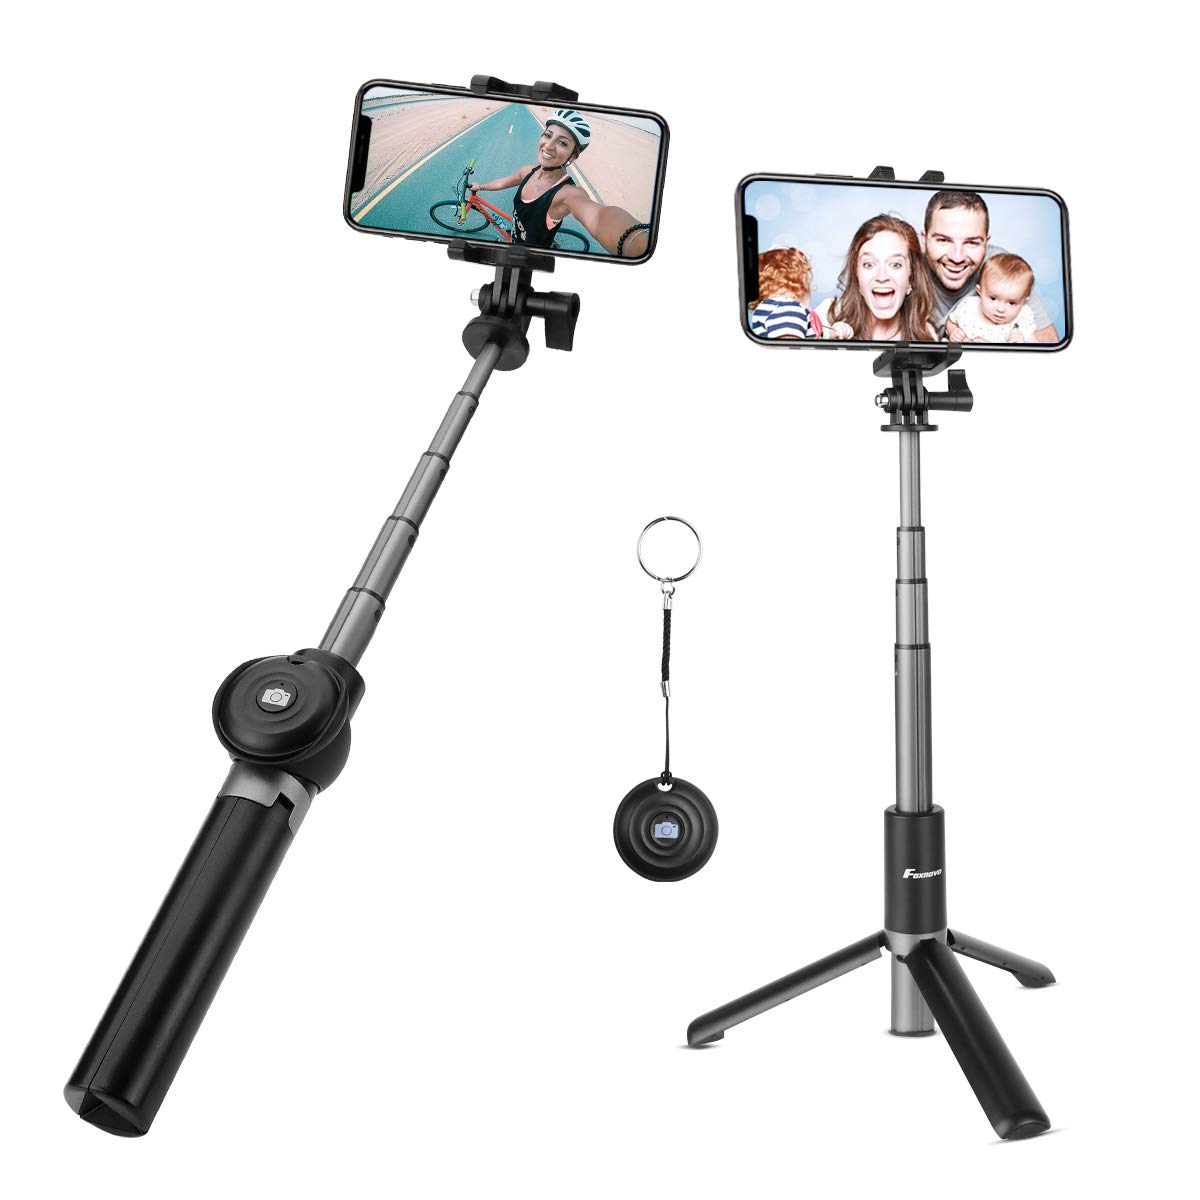 Foxnovo Selfie Stick Bluetooth, Extendable Selfie Stick with Wireless Remote Tripod Selfie Stick for iPhone X/8/7/6/Plus, Galaxy S9/S9 Plus/Note 8/S8, Android, GoPro